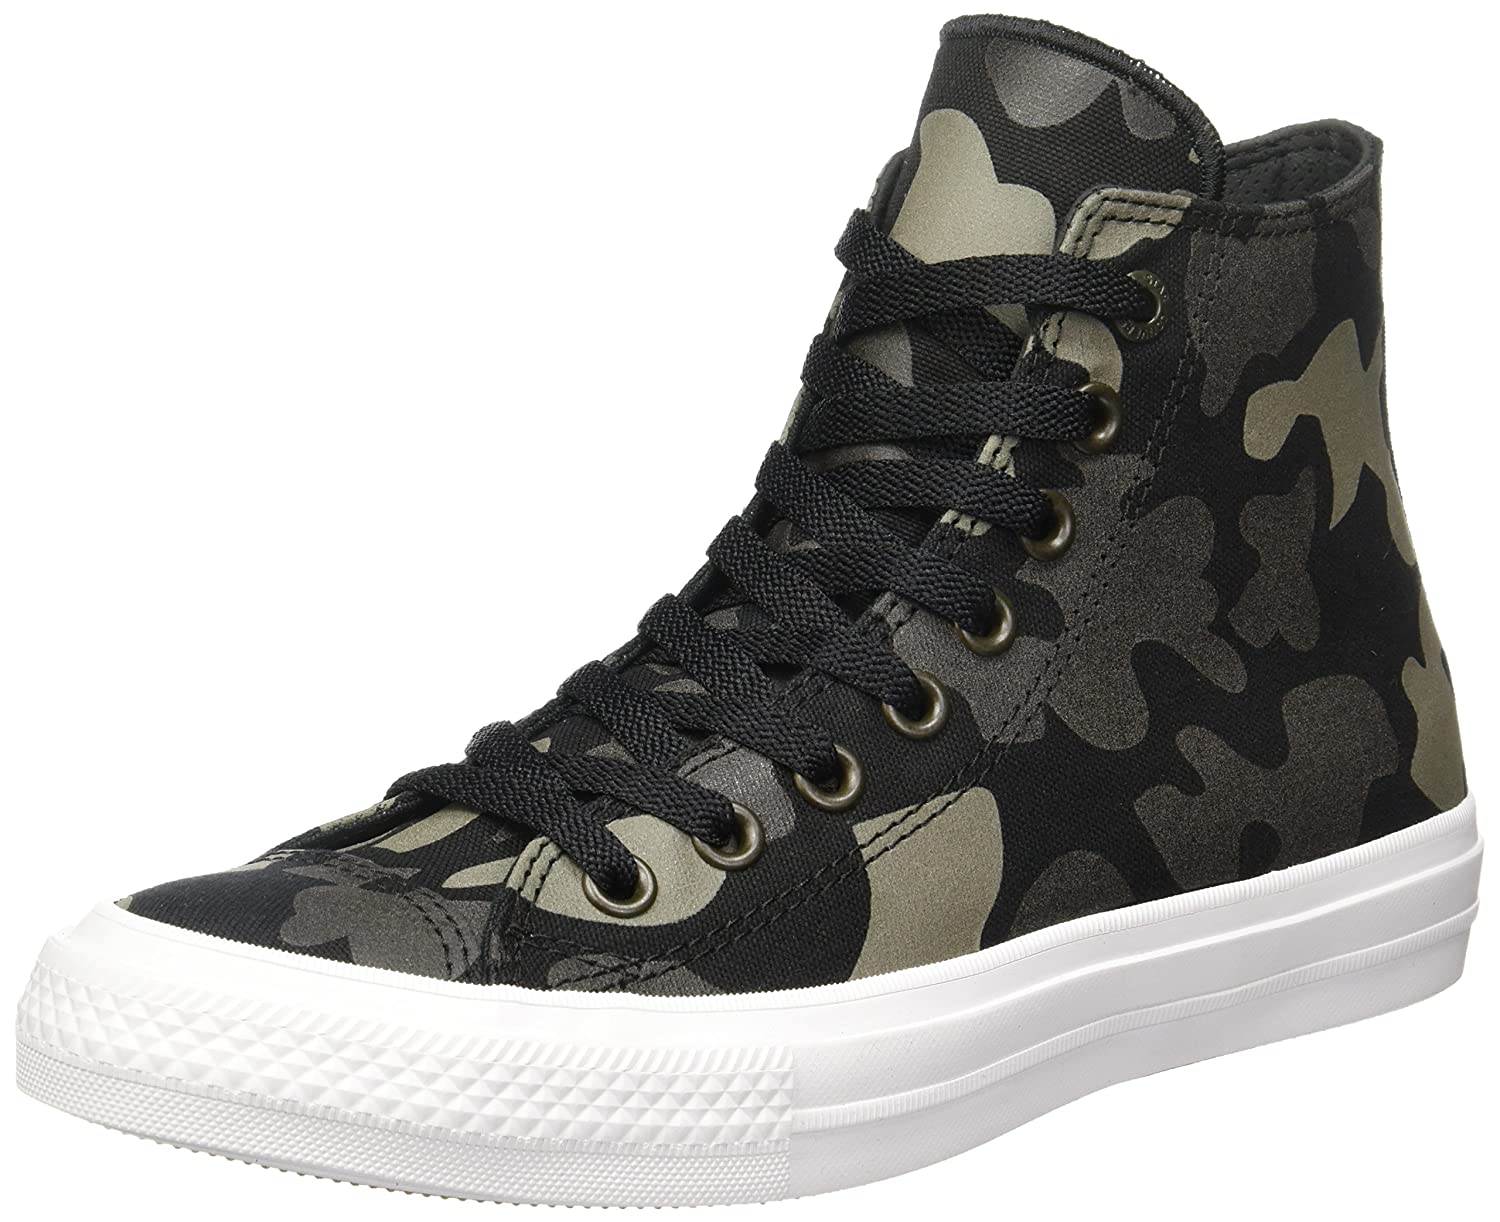 cf1c0062ee7eda Converse Unisex Adults  Chuck Taylor All Star Ii Reflective Camo Hi-Top  Sneakers